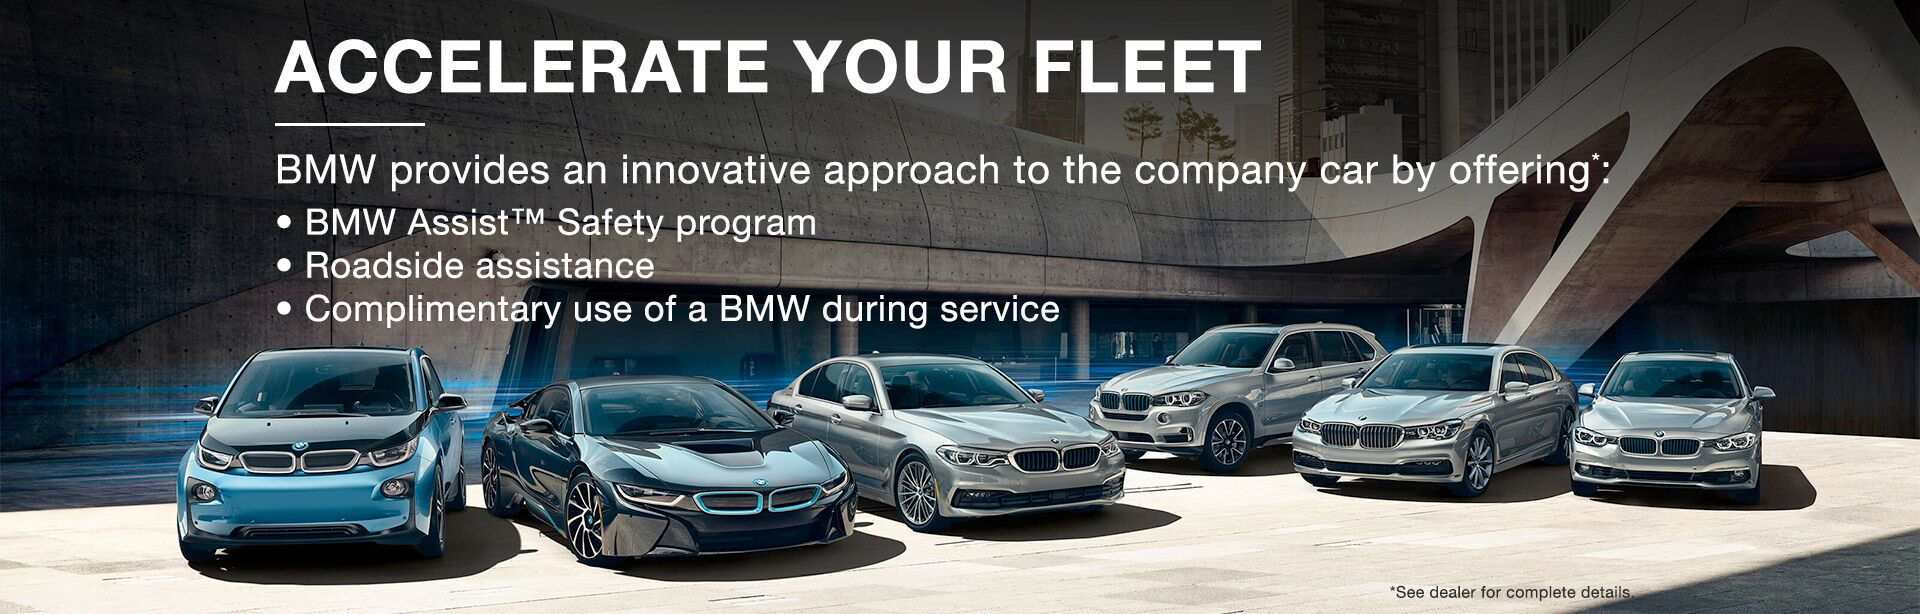 BMW Corporate Fleet Program at Cardenas BMW